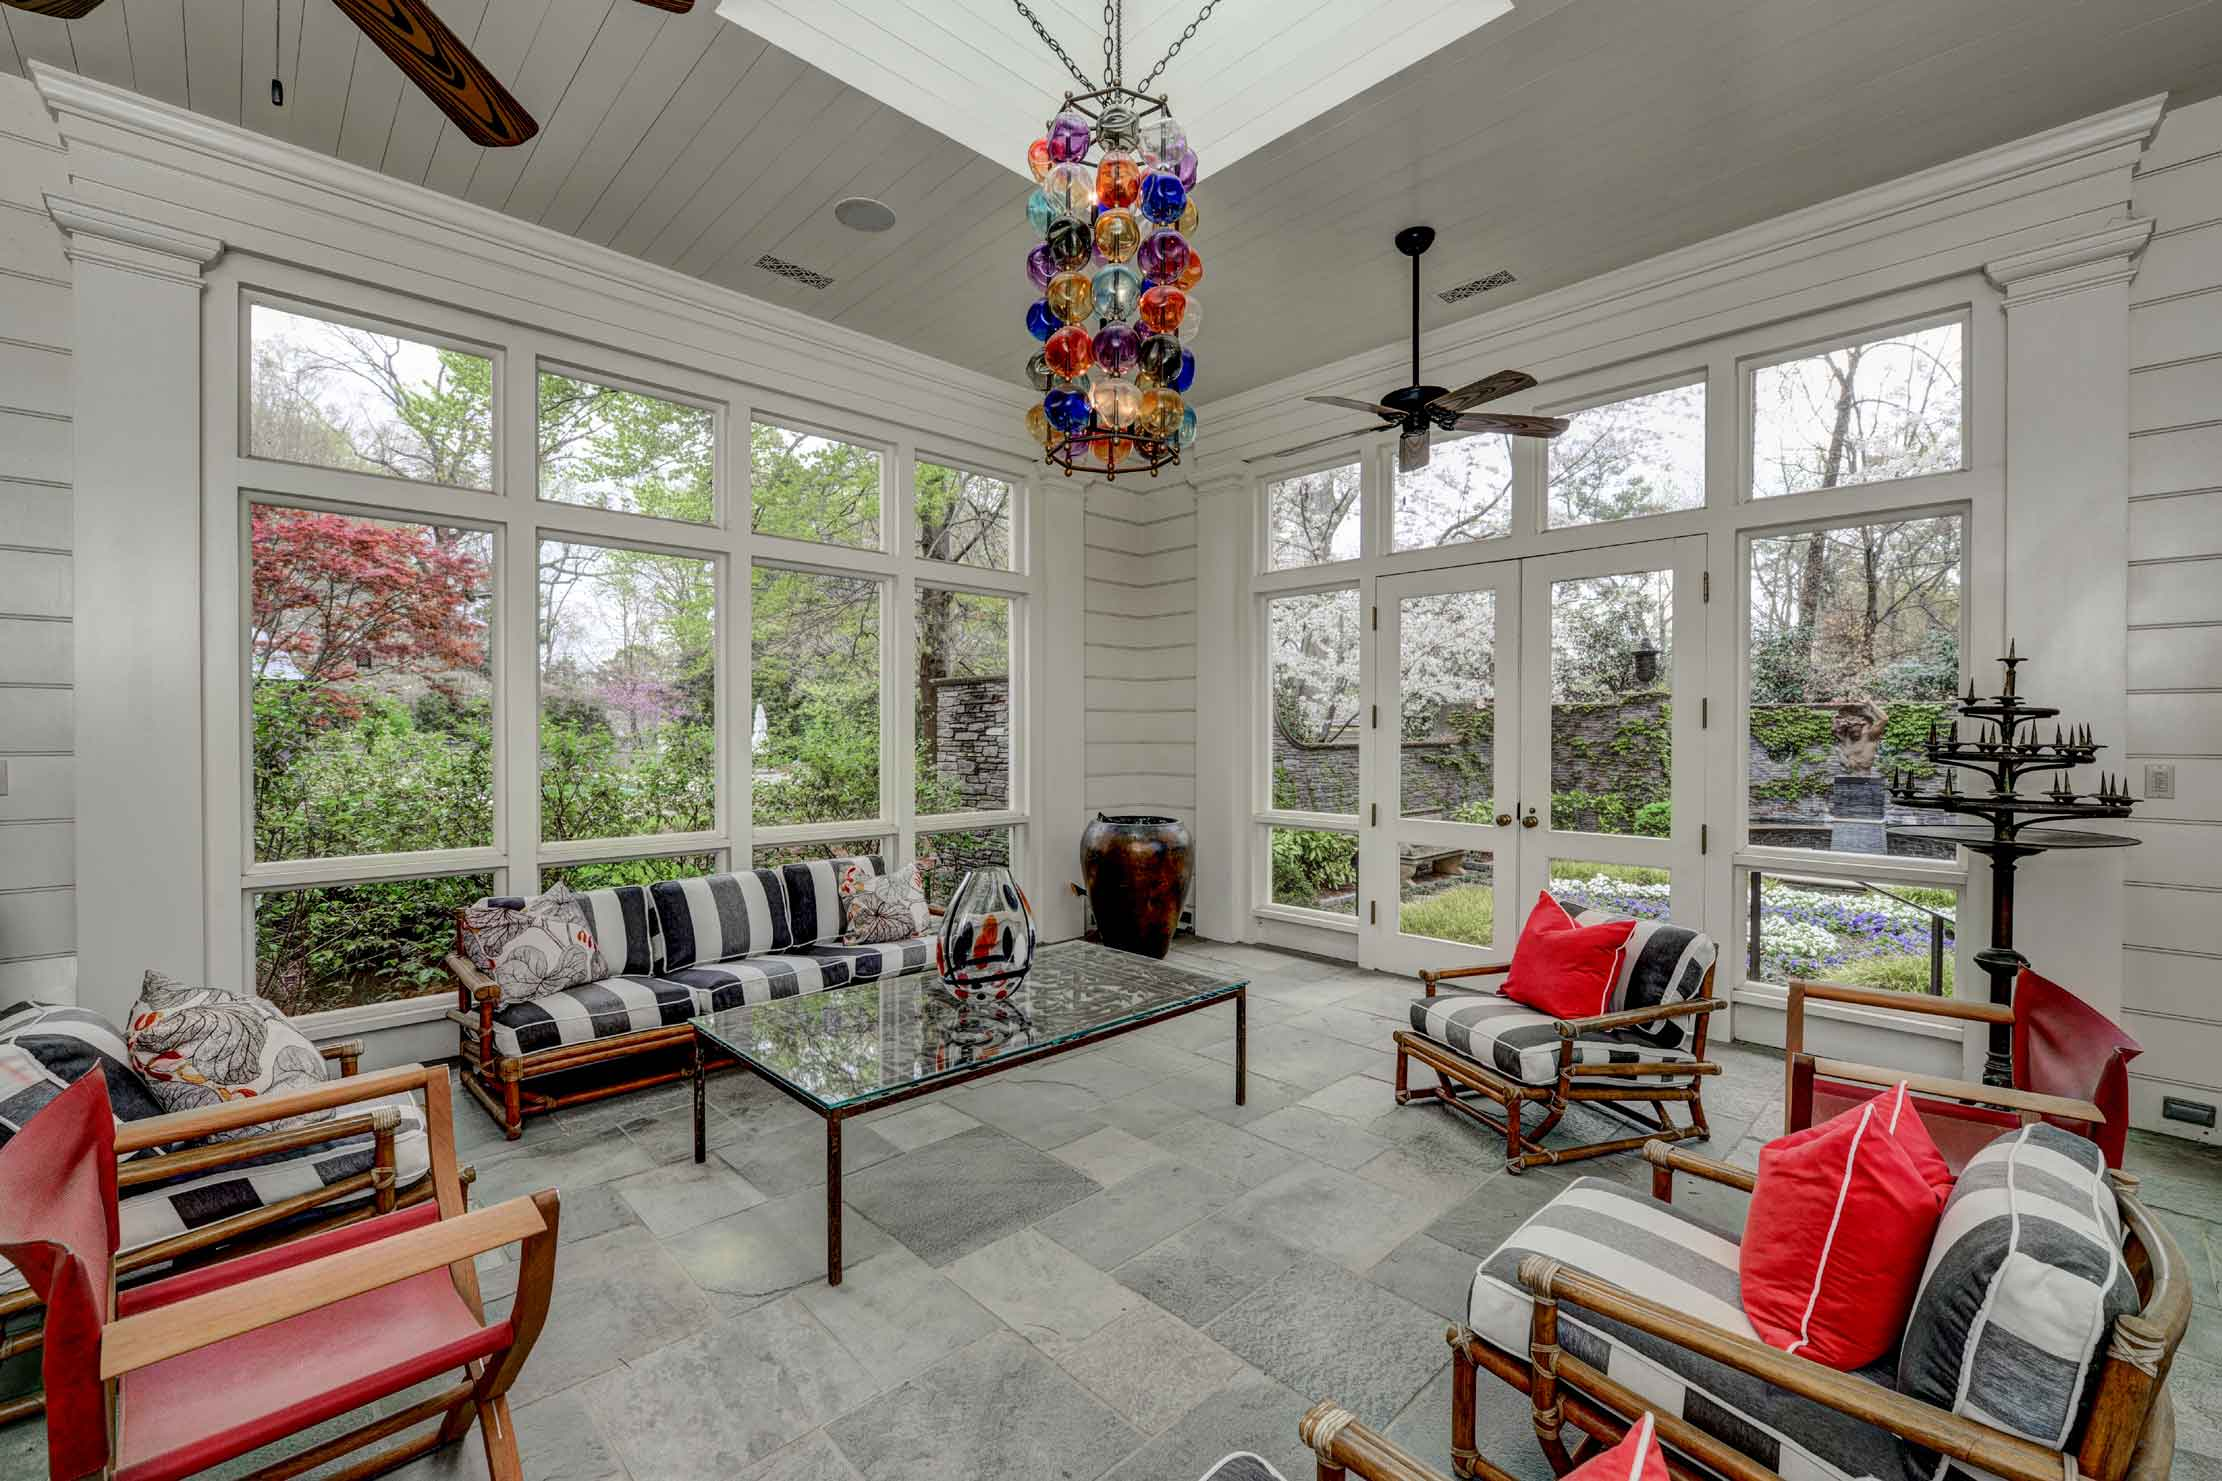 Built in 1926, White Oaks is one of Atlanta's finest private estates.